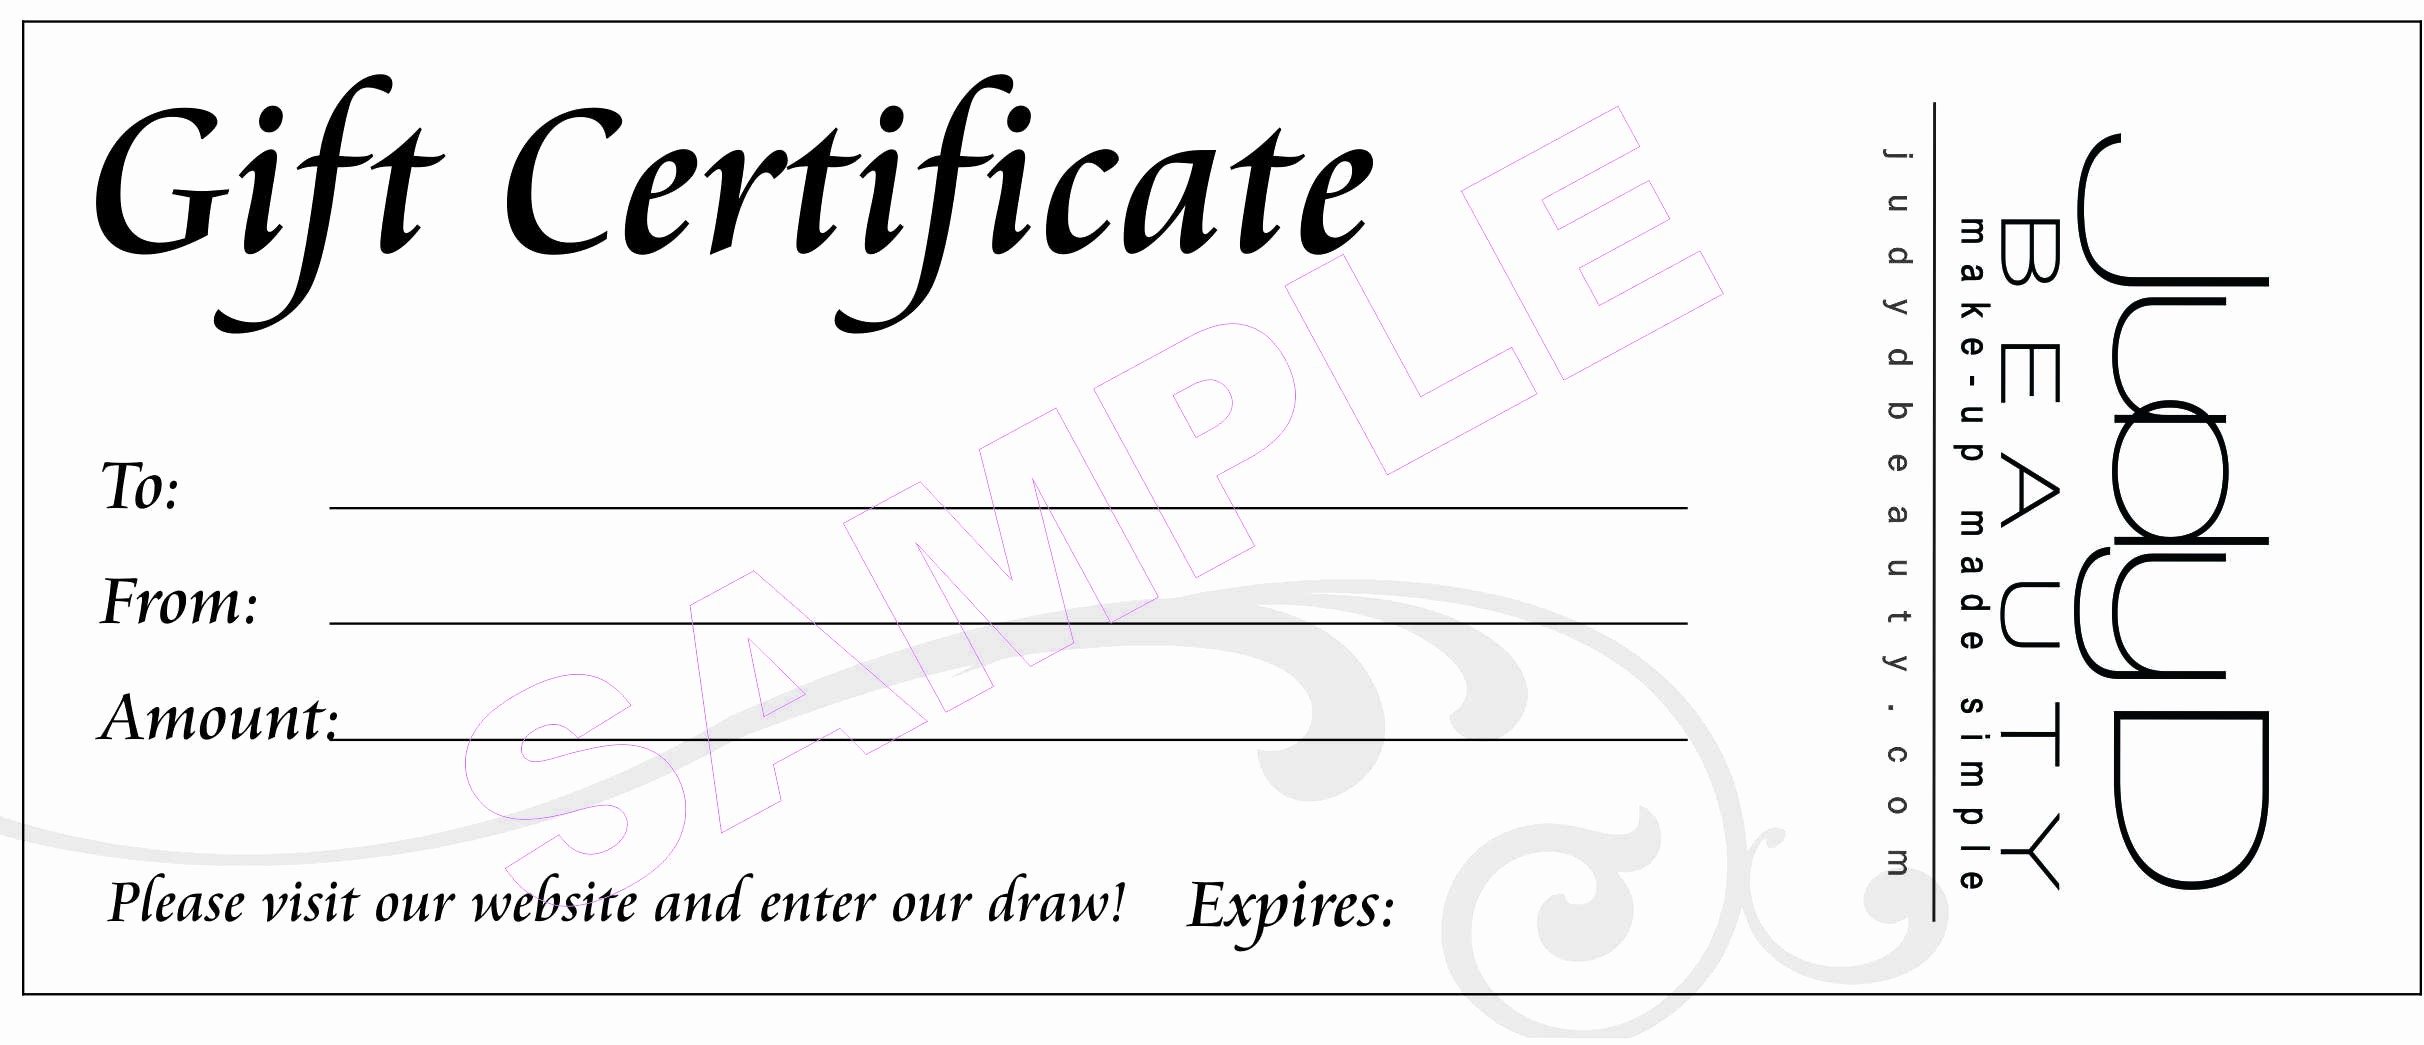 Gift Certificate Samples Free Templates New 18 Gift Certificate Templates Excel Pdf formats